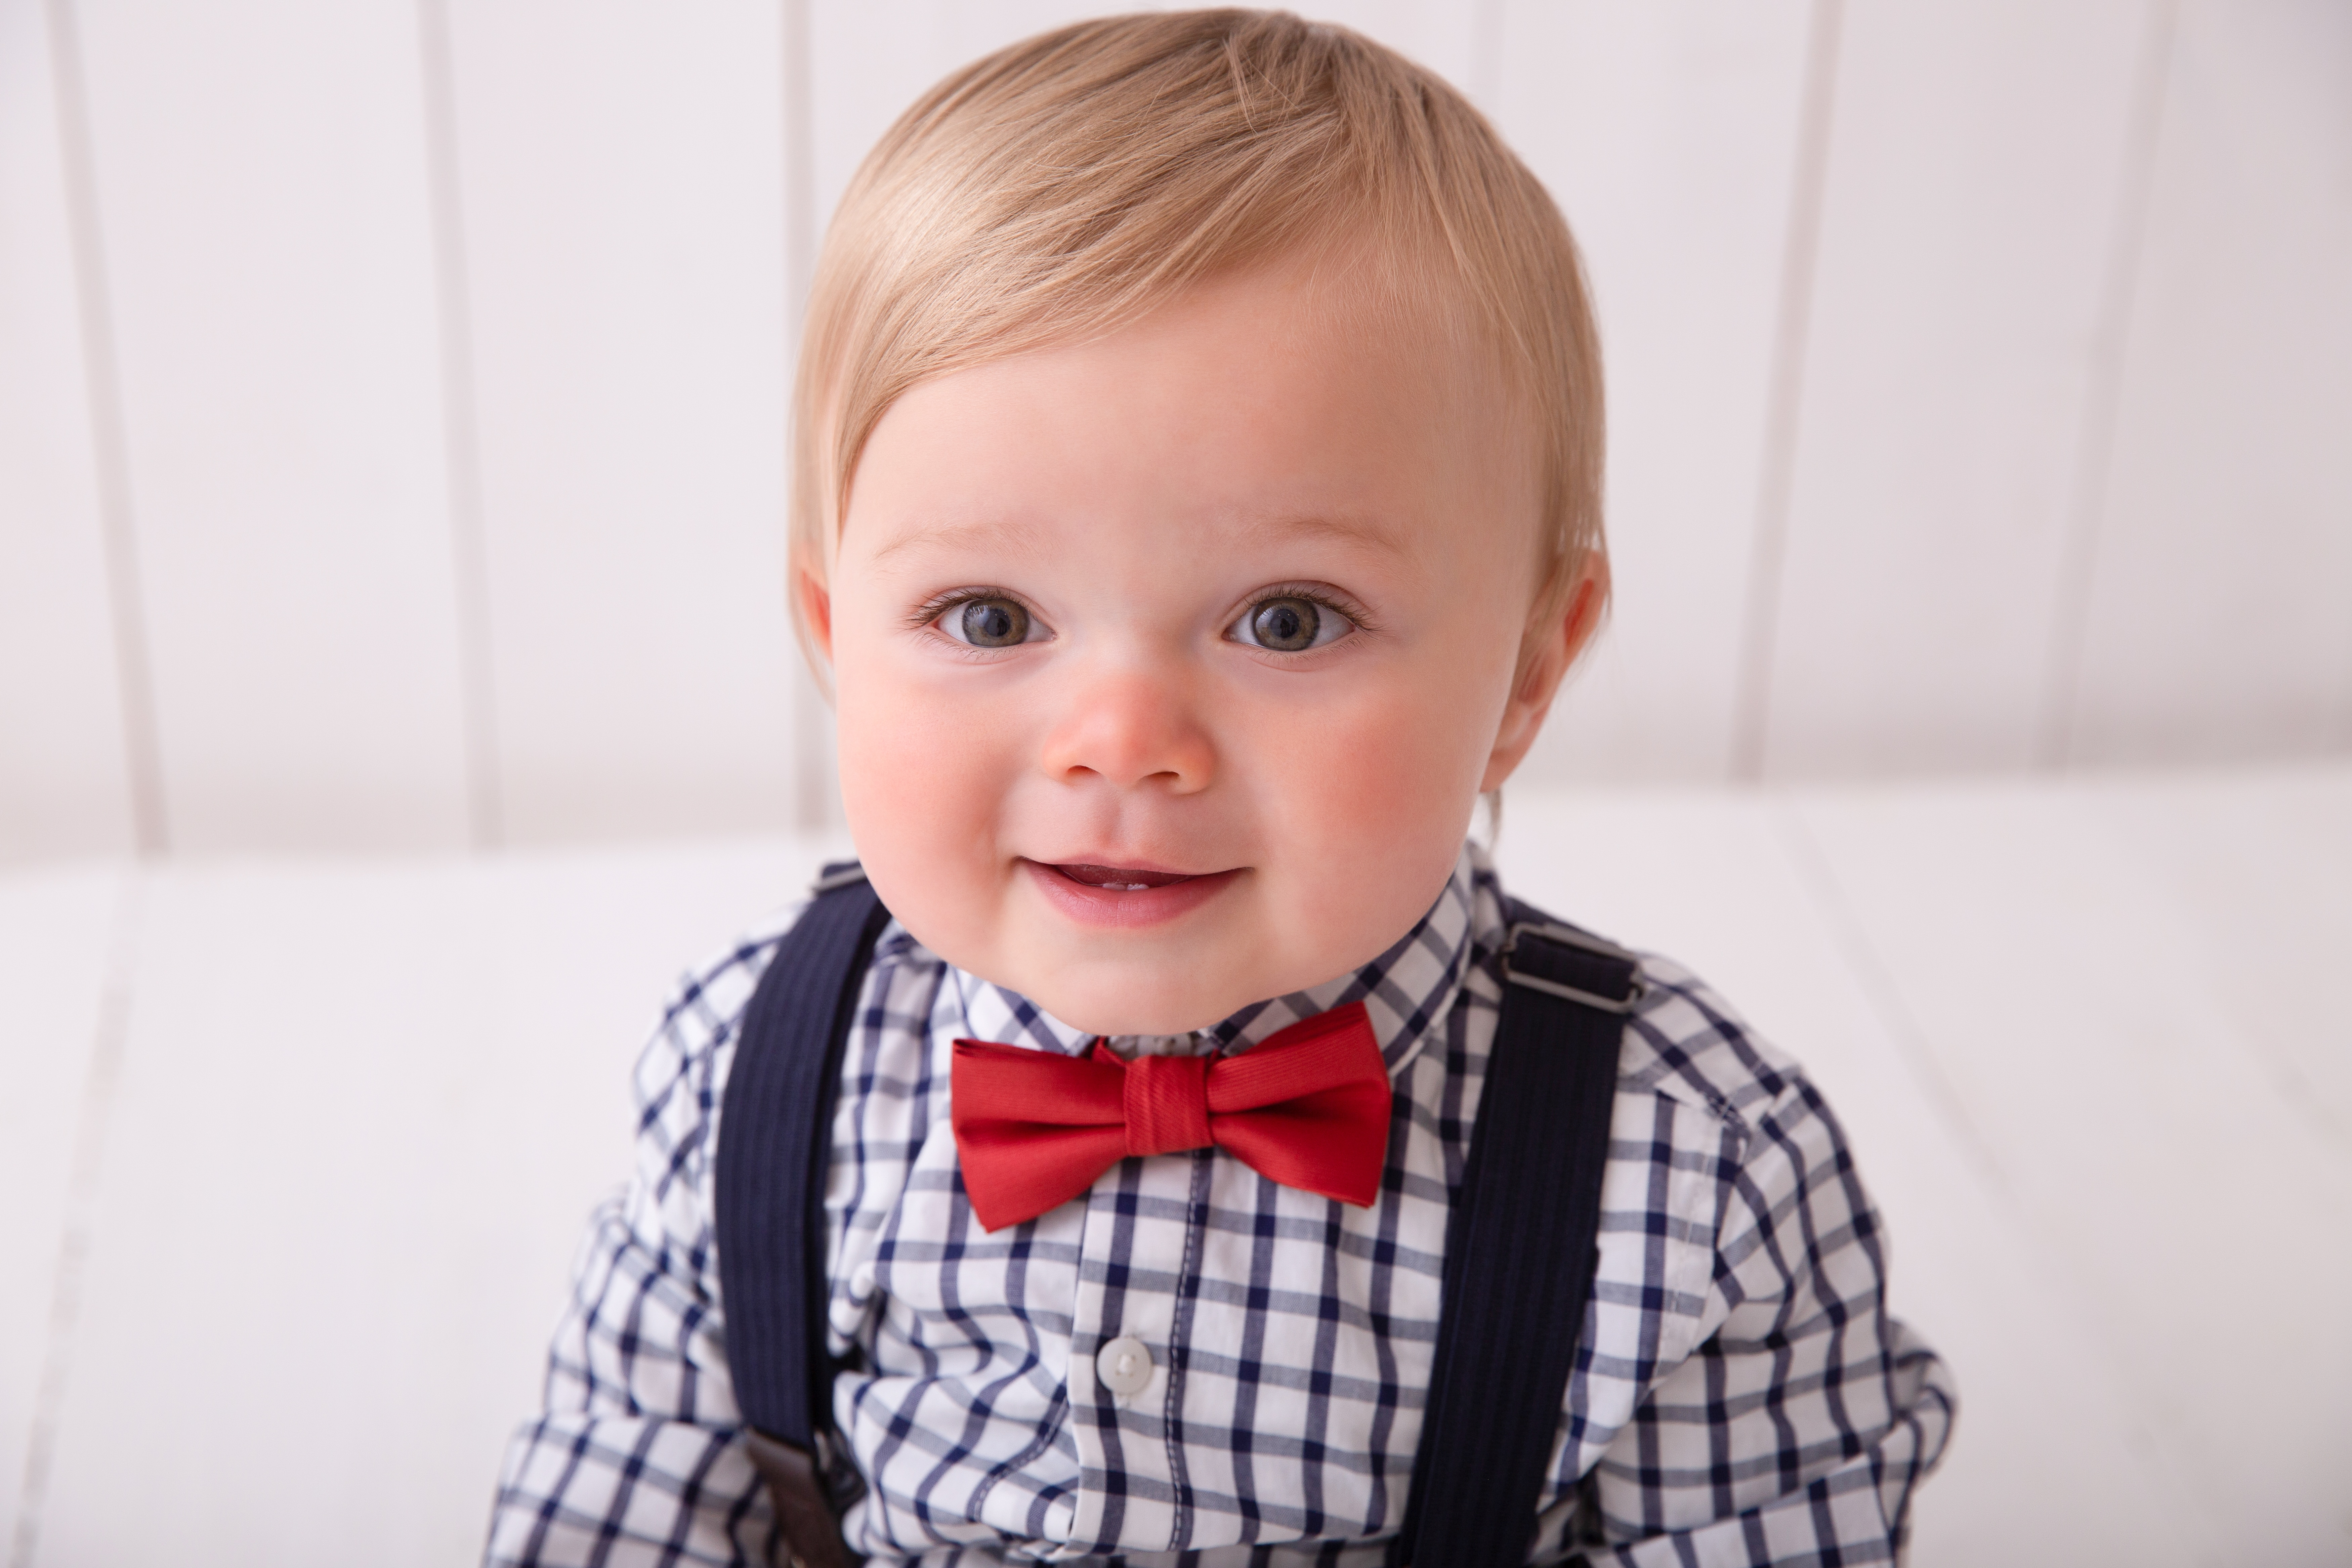 Norwich cute baby with bow tie